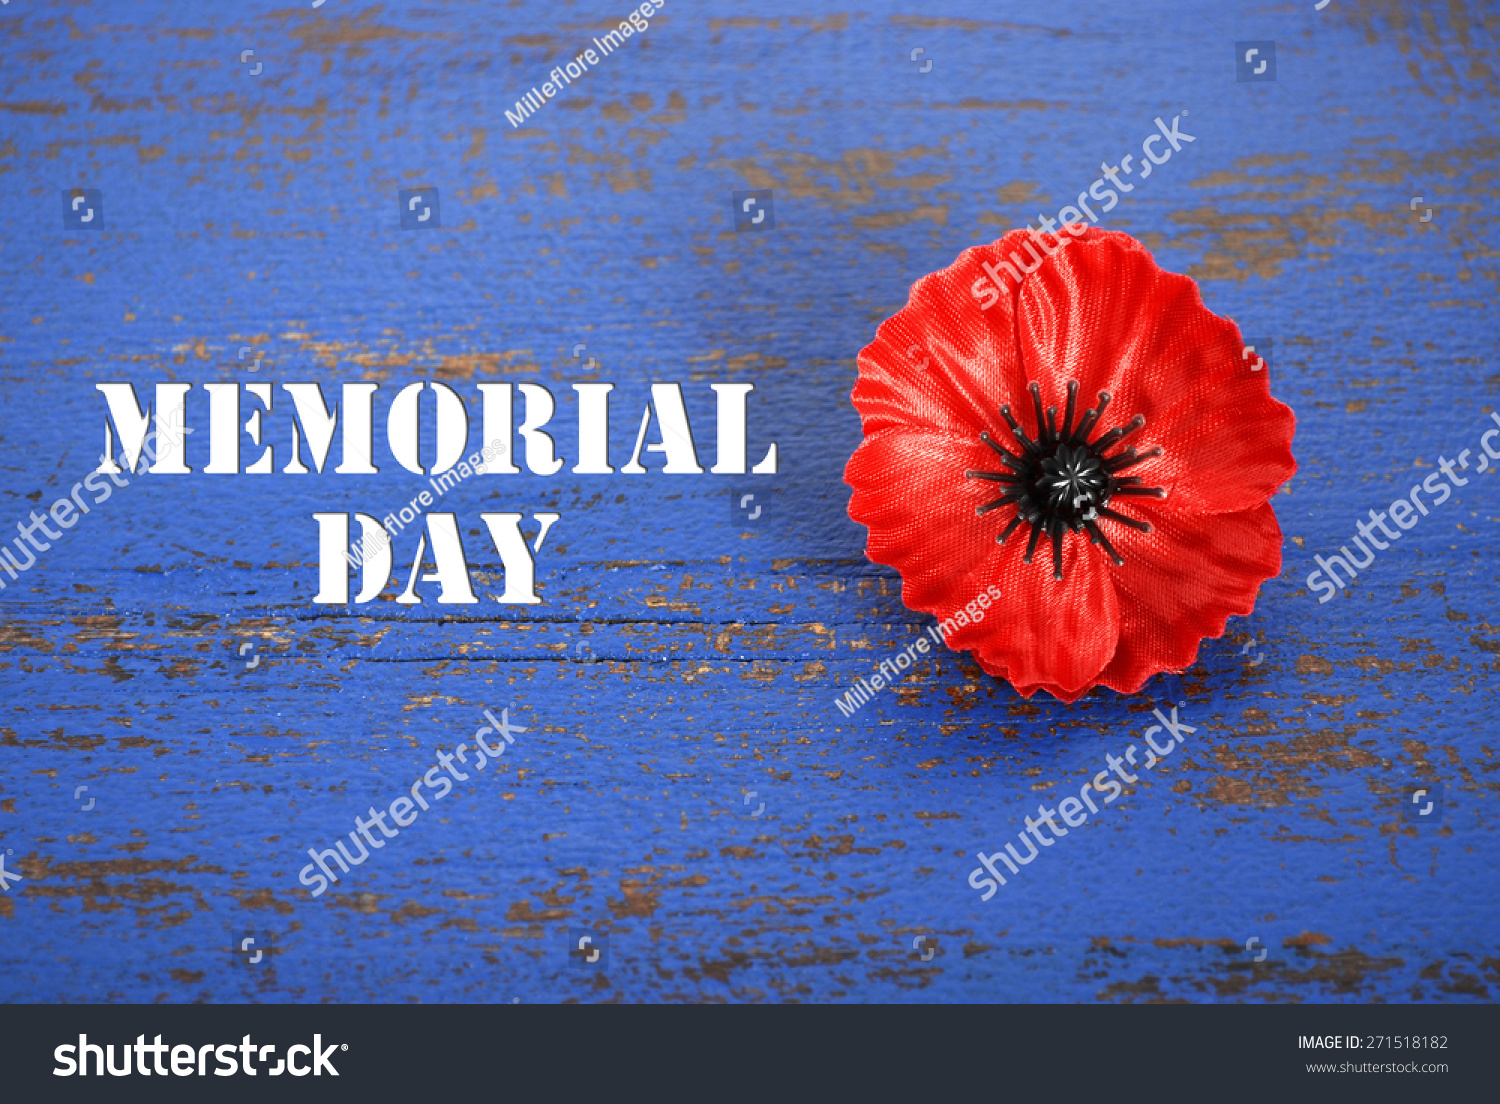 Usa memorial day concept red remembrance stock photo 271518182 usa memorial day concept of red remembrance poppy on dark blue vintage distressed wood table publicscrutiny Image collections